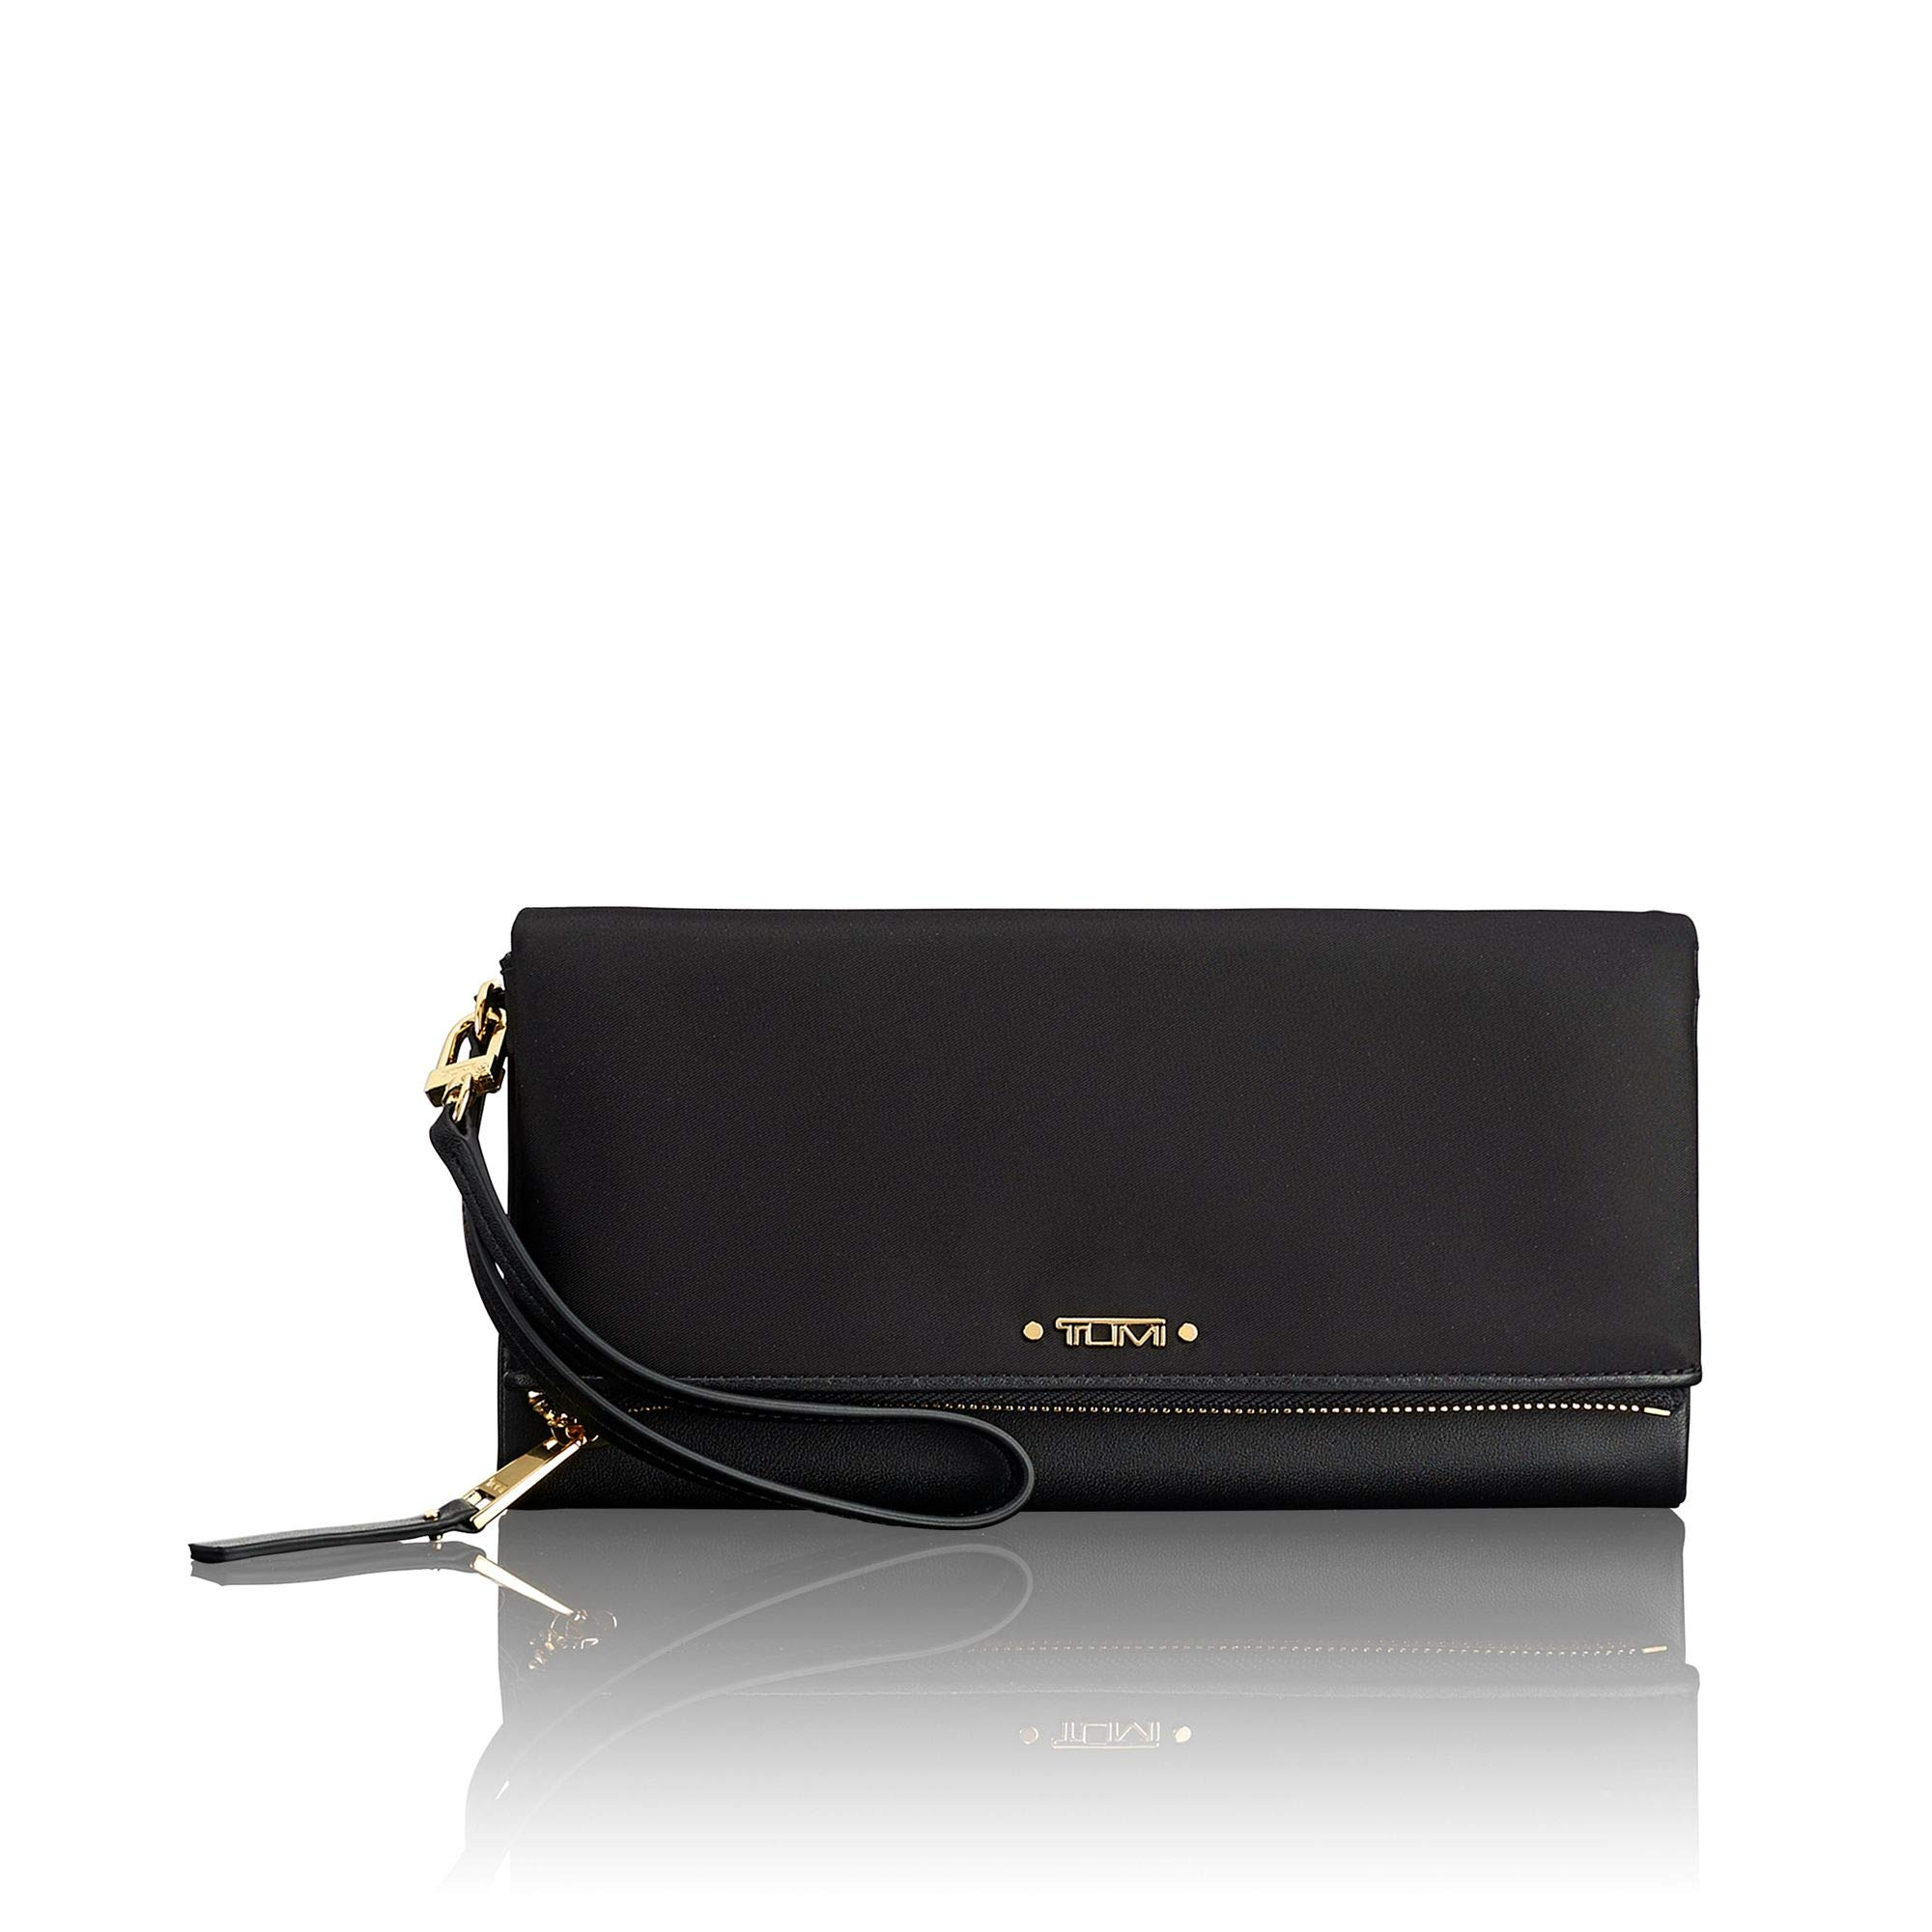 TUMI - Voyageur Travel Wallet - Card Holder for Women - Black by TUMI